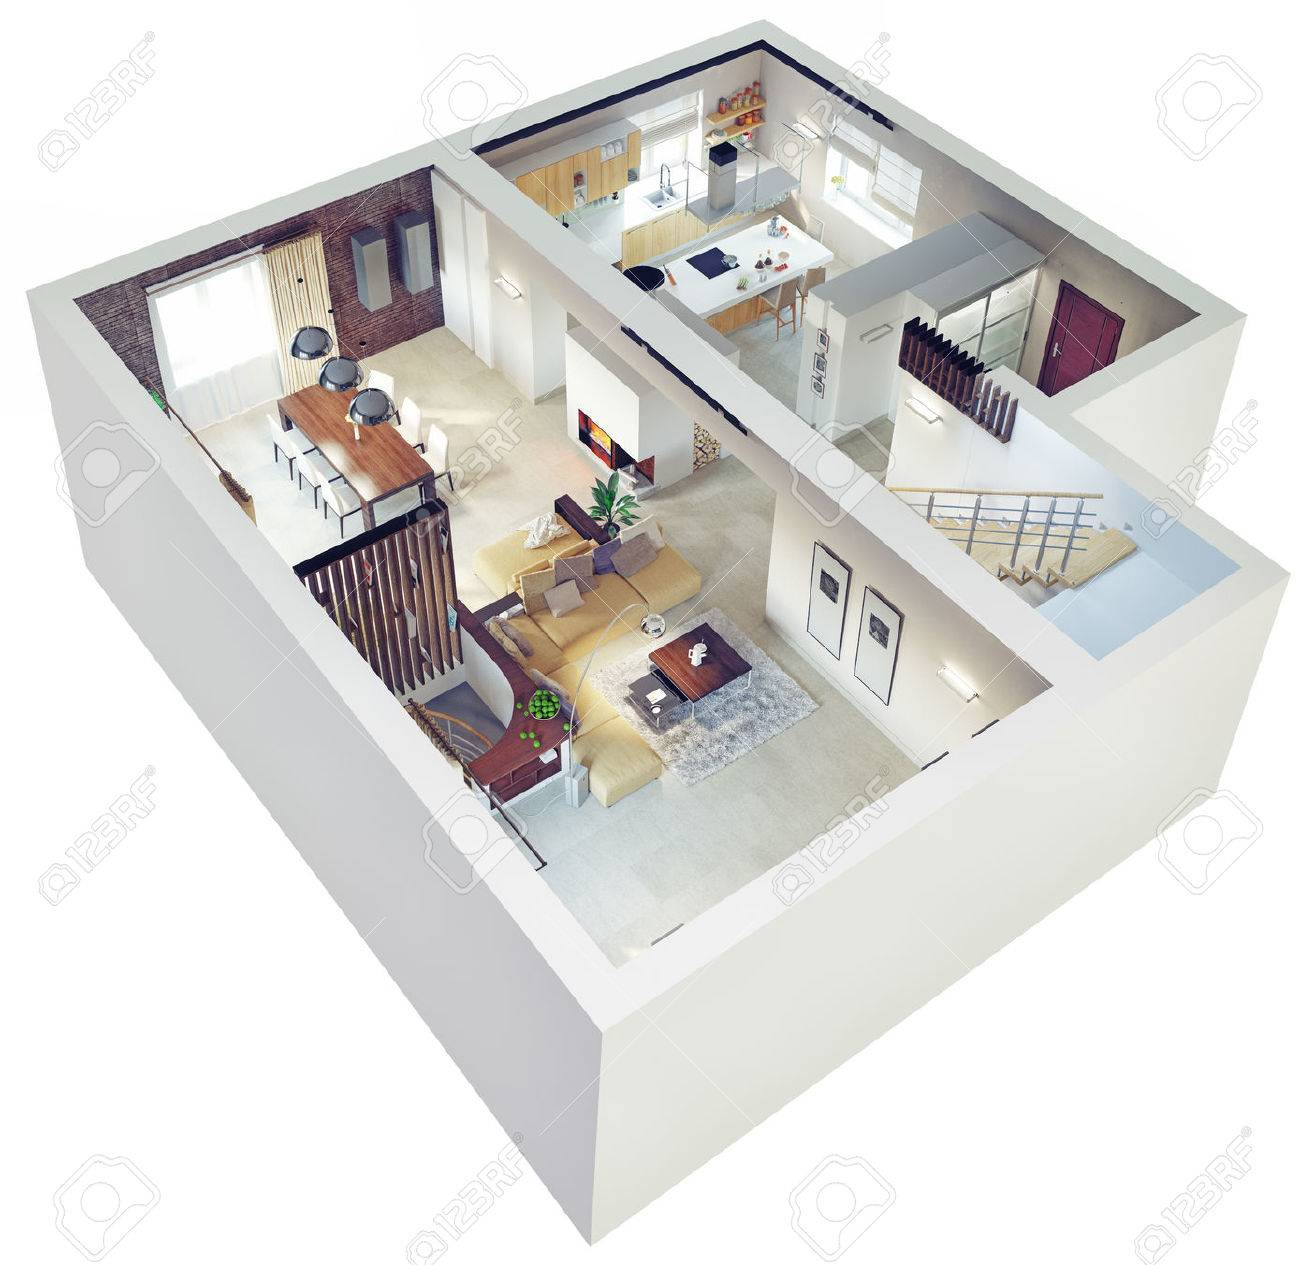 Plan View Of An ApartmentGround Floor Clear 3d Interior Design Stock Photo